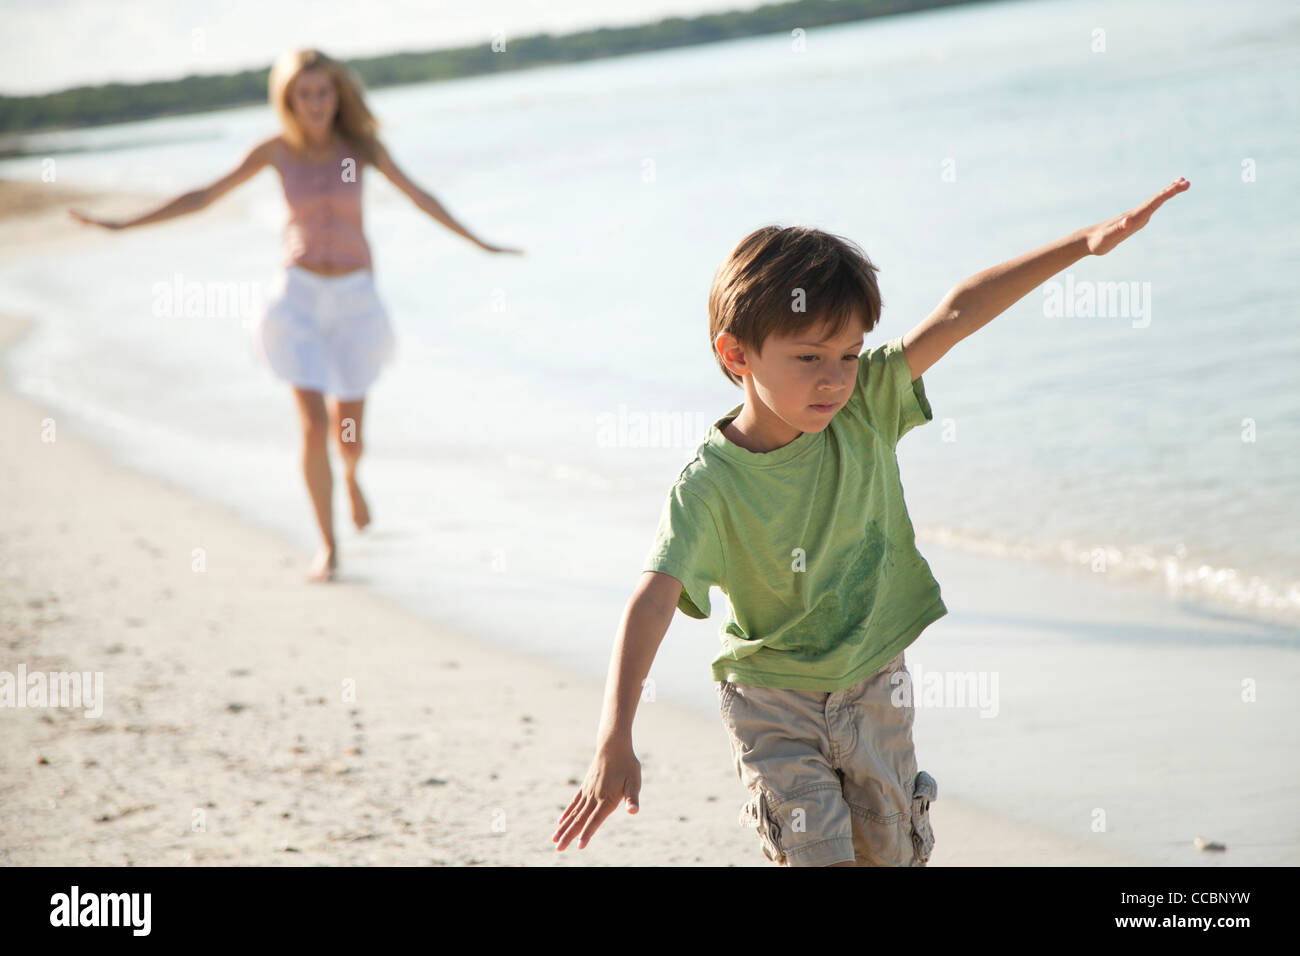 Boy running with arms out at the beach - Stock Image